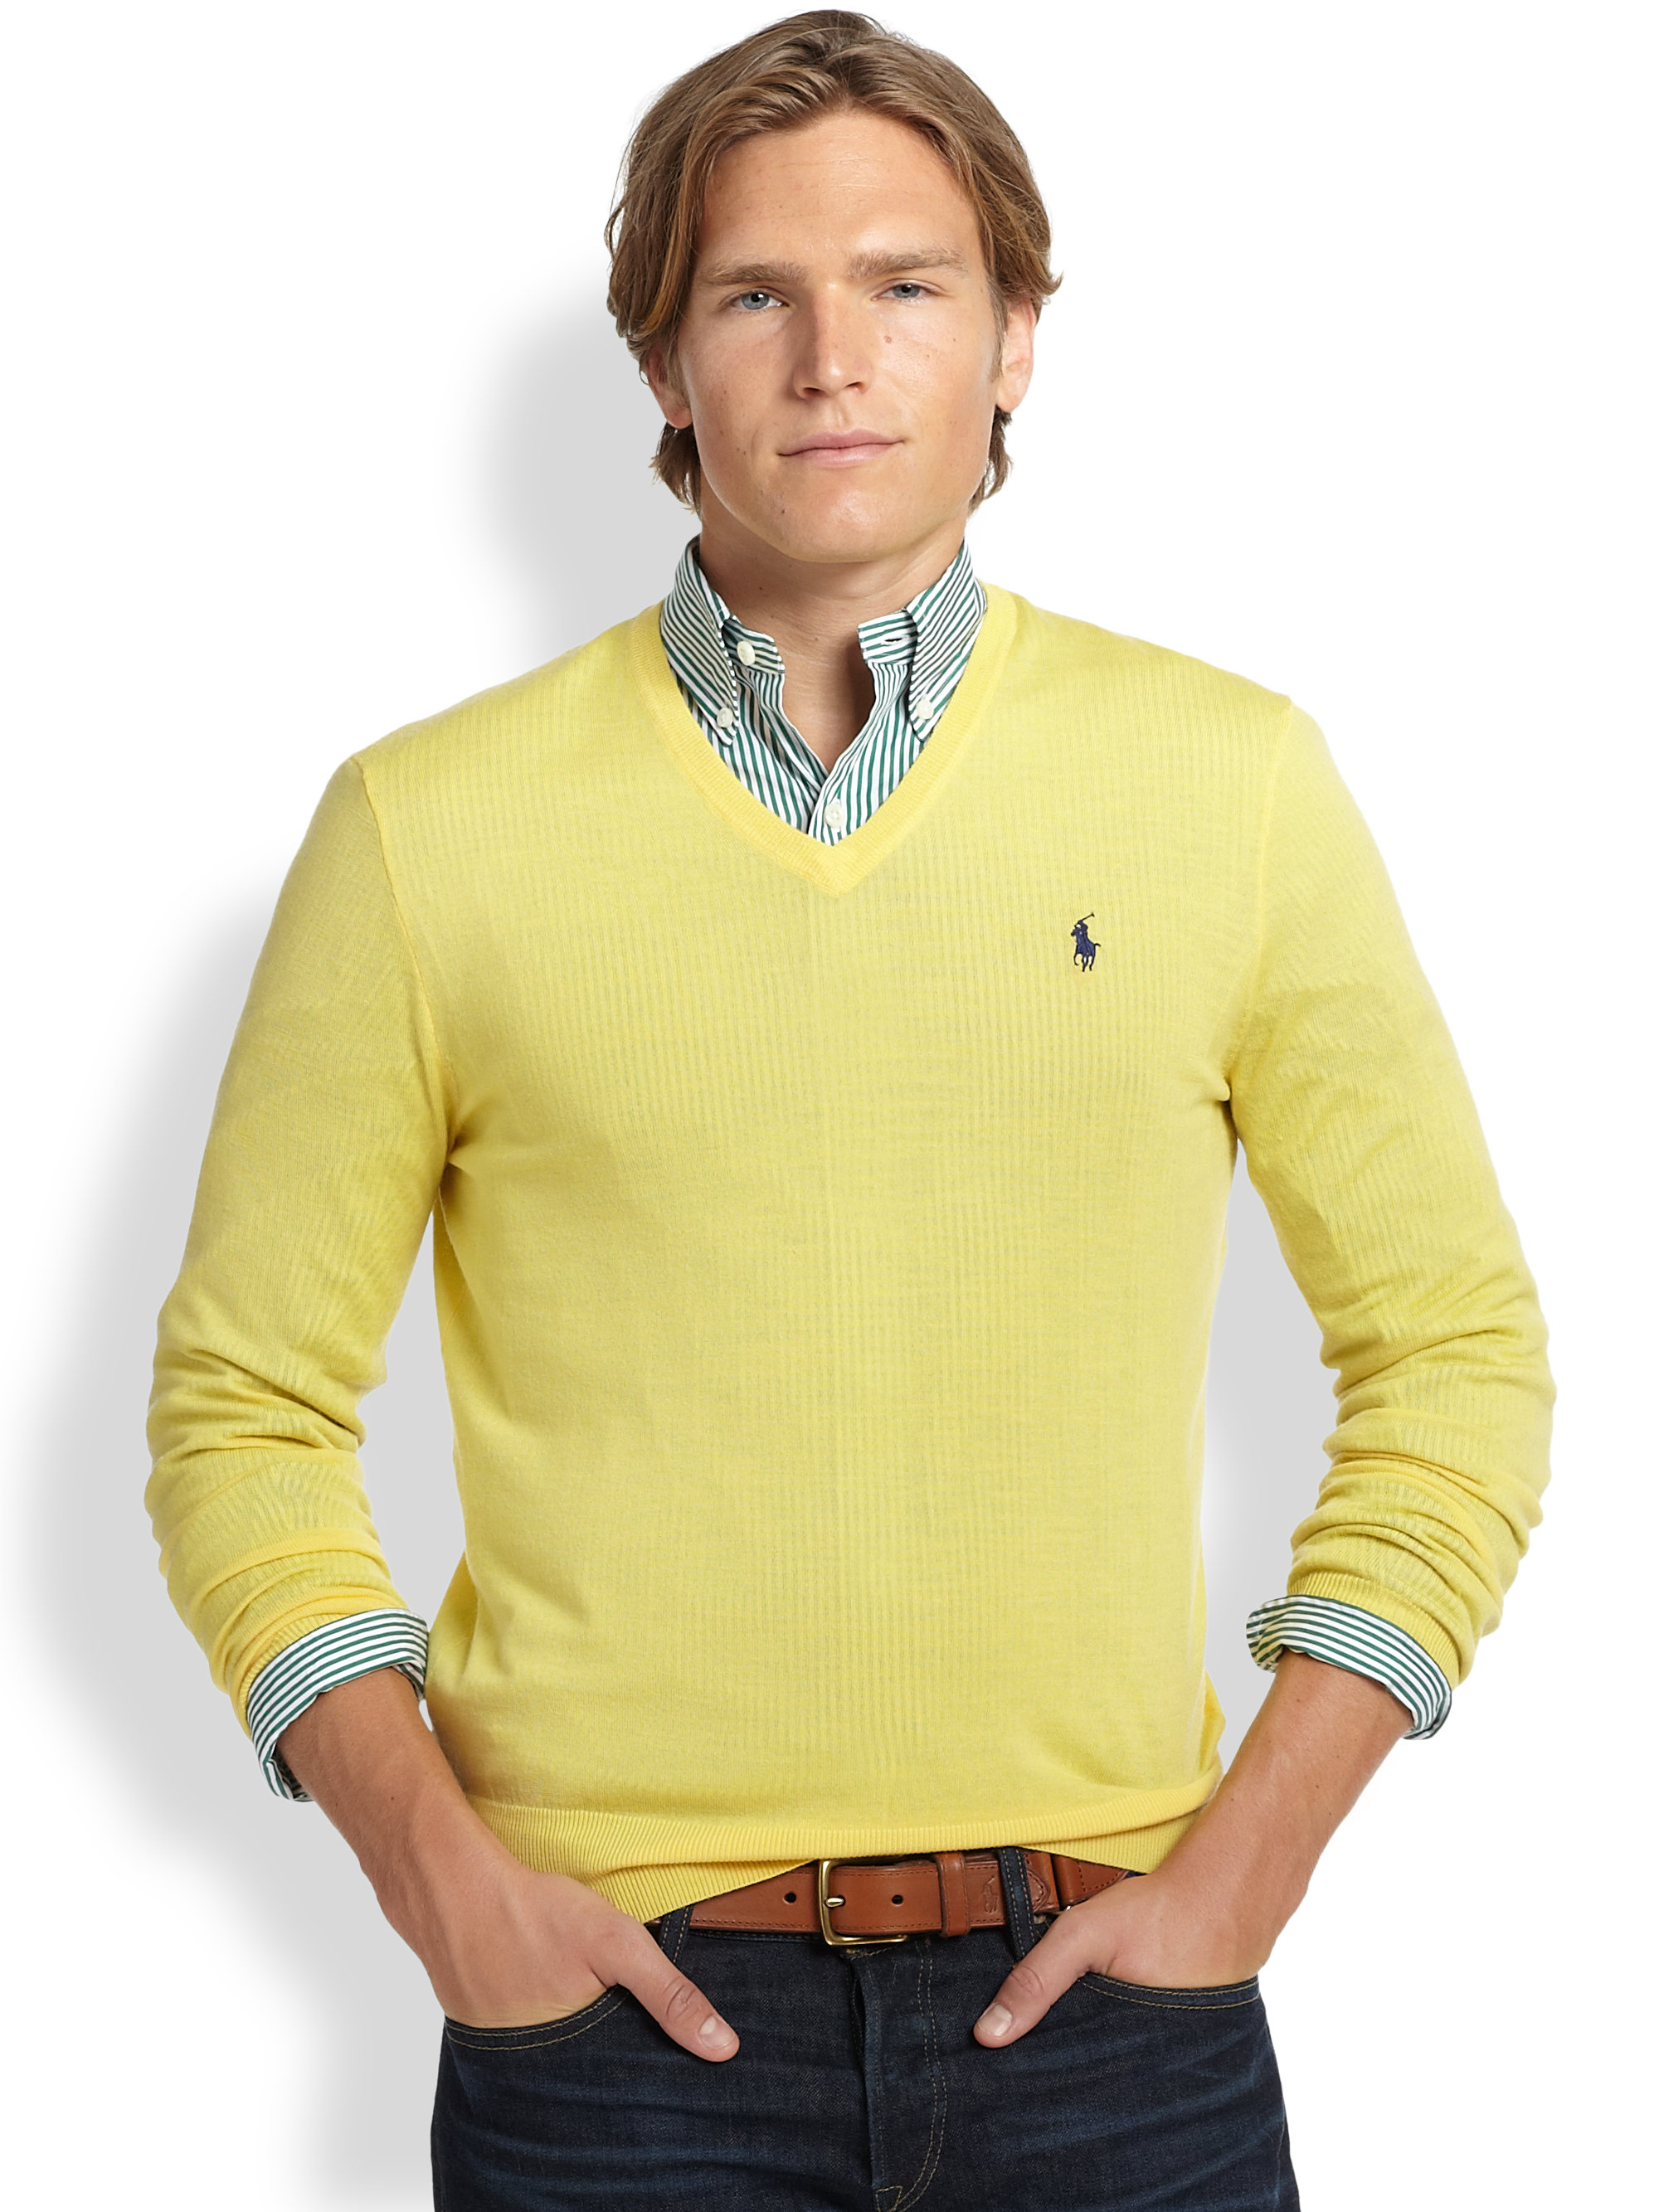 7a6c7e41b8671 Lyst - Polo Ralph Lauren Slim-fit Merino V-neck Sweater in Yellow ...